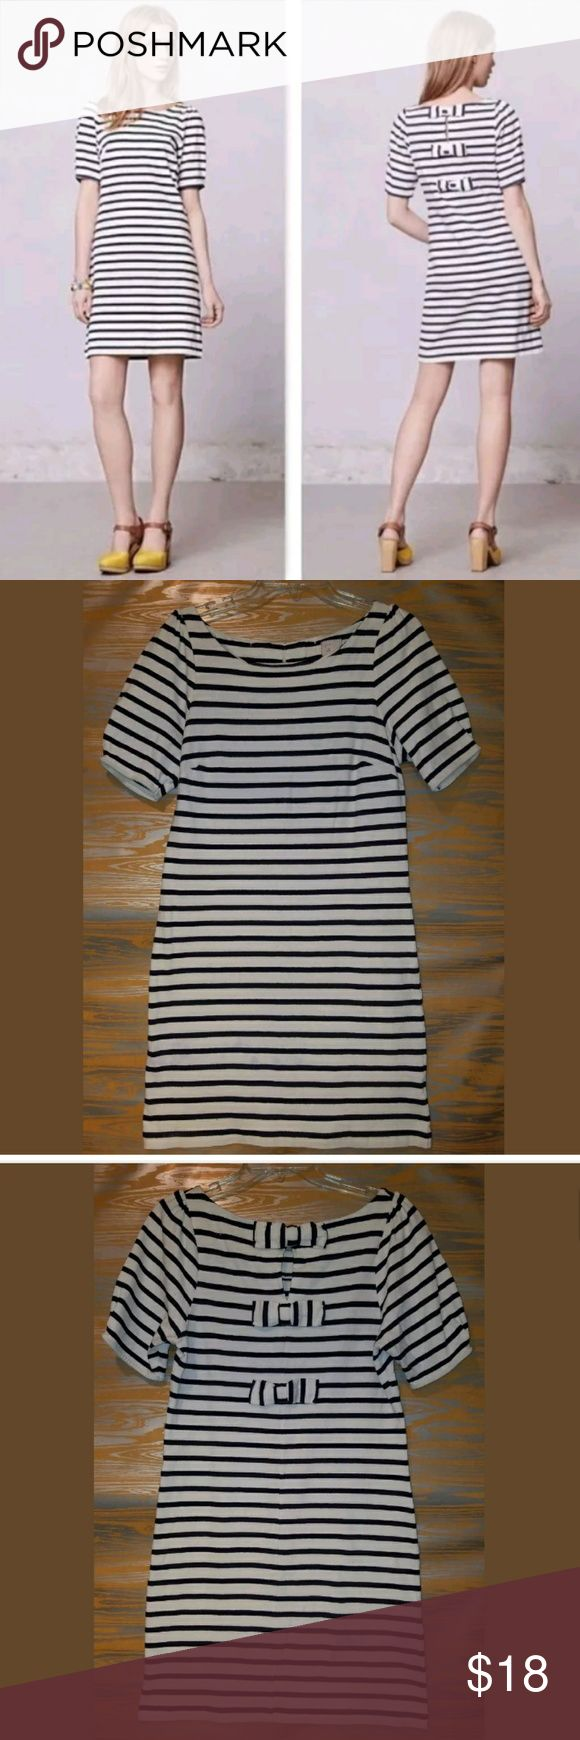 "POSTMARK nautical THREE BOW short slv stripe dress approximate measurements: pit to pit"" 18 - neck to hem 34.5  100% cotton nautical dress  short puff shoulder sleeves  Three bows down the back  Navy blue and white stripes rated good preowned condition some faint spots near the hem  can shorten length or try soaking/washing in oxy-clean Anthropologie Dresses Mini"